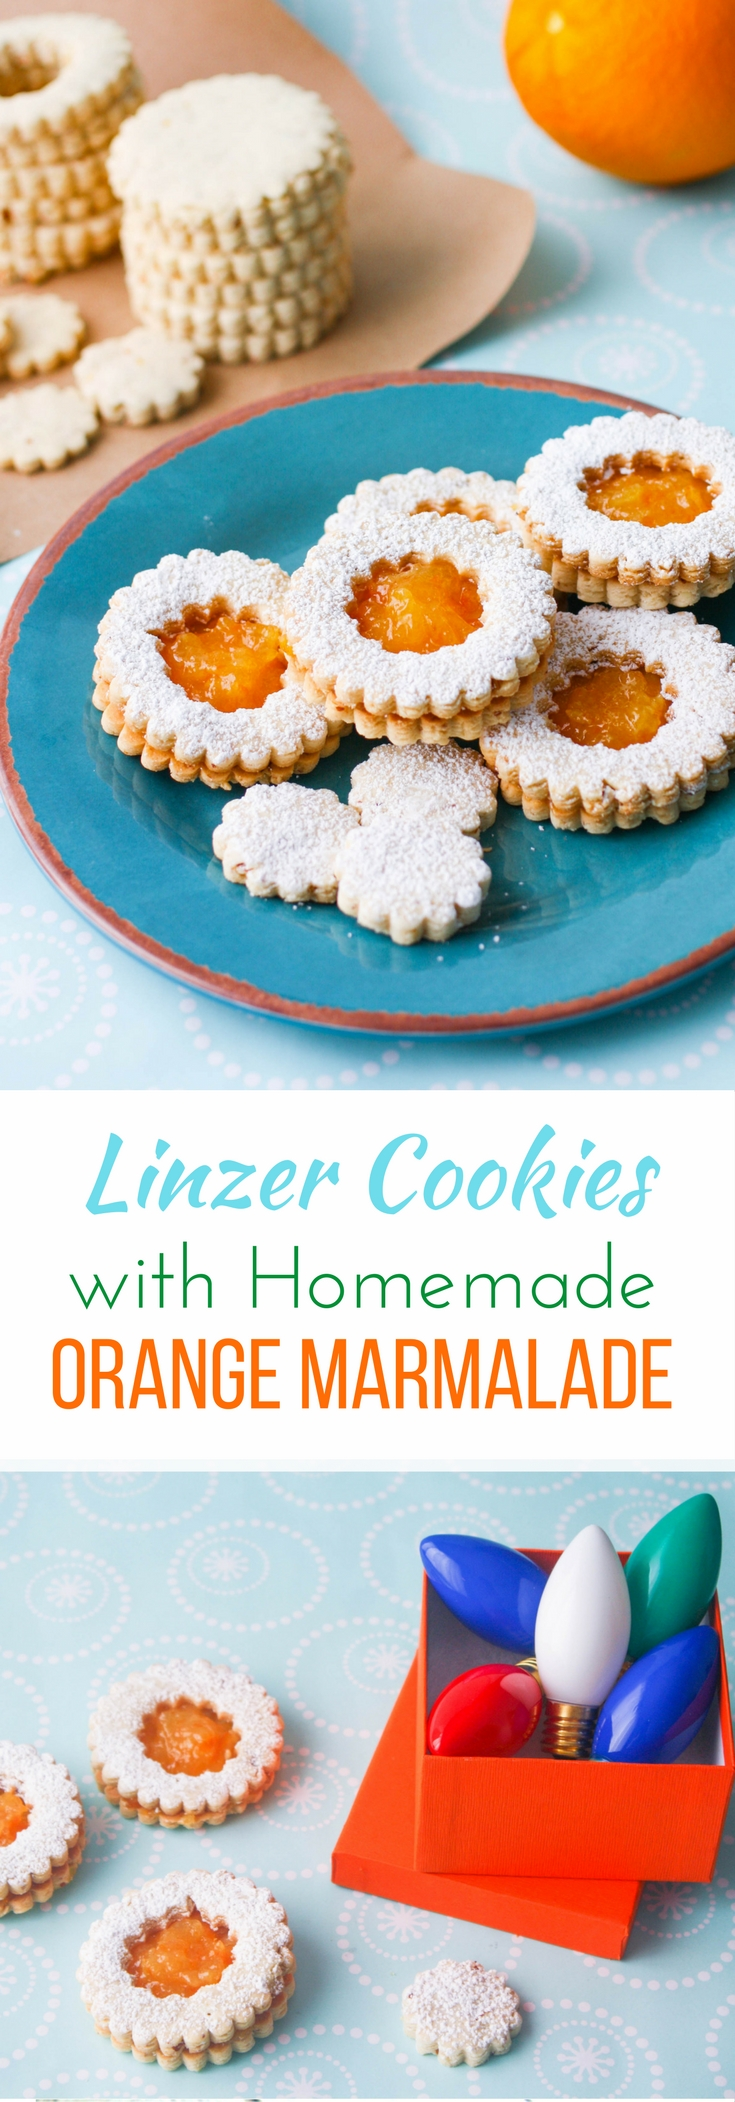 Linzer Cookies with Homemade Orange Marmalade are a fun and tasty treat! These linzer cookies are lovely for the holiday season.